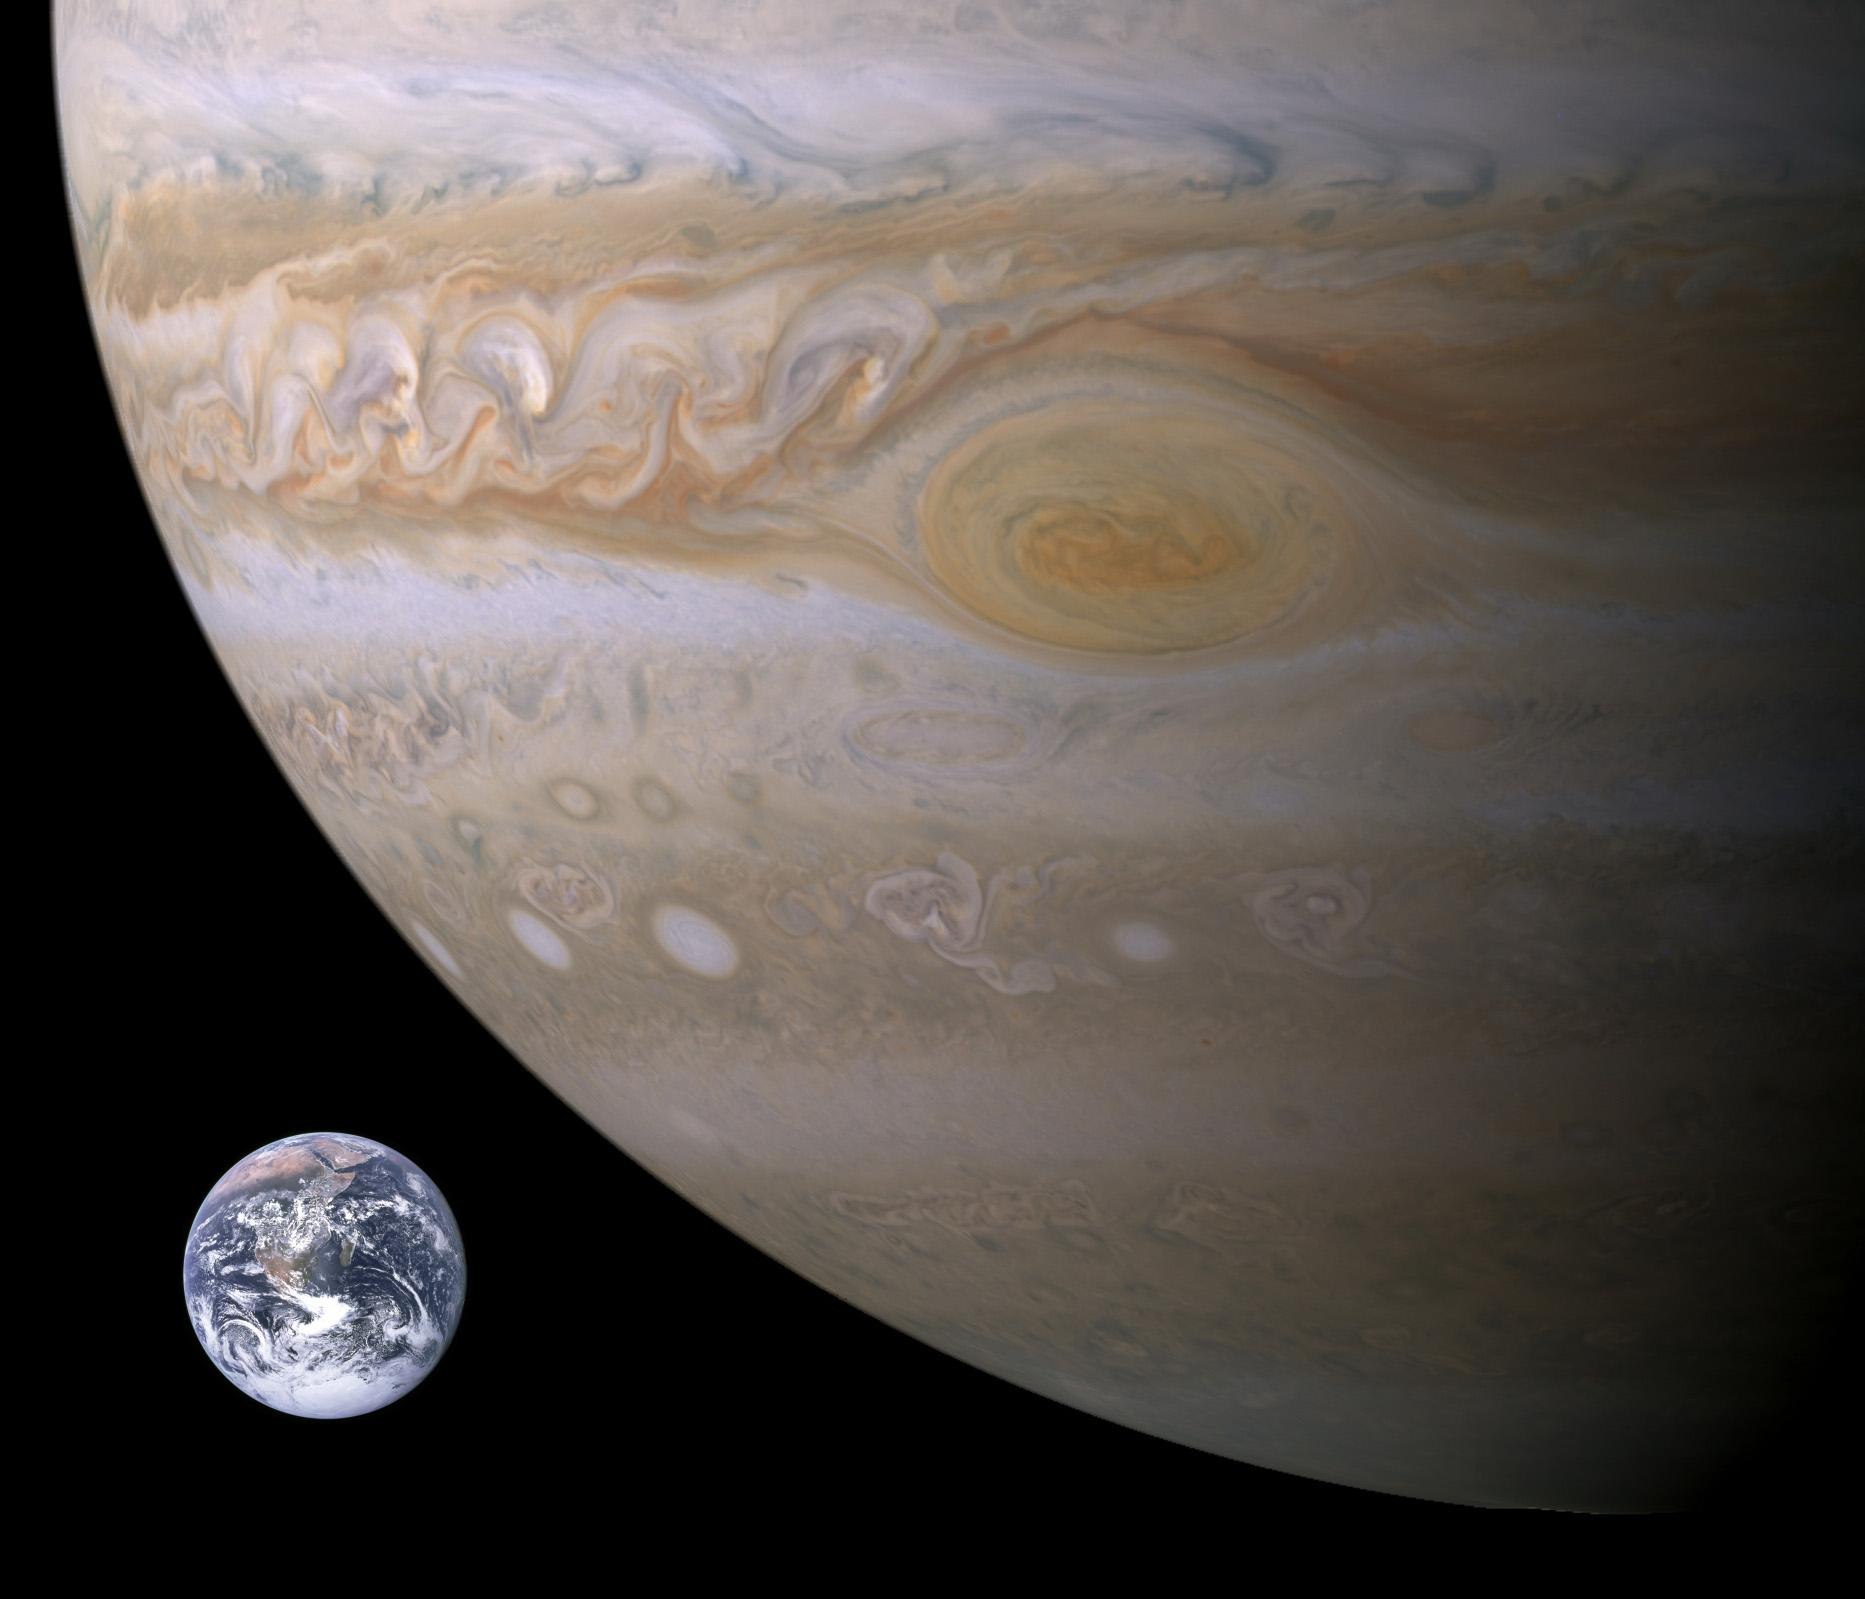 Jupiter Compared to Earth